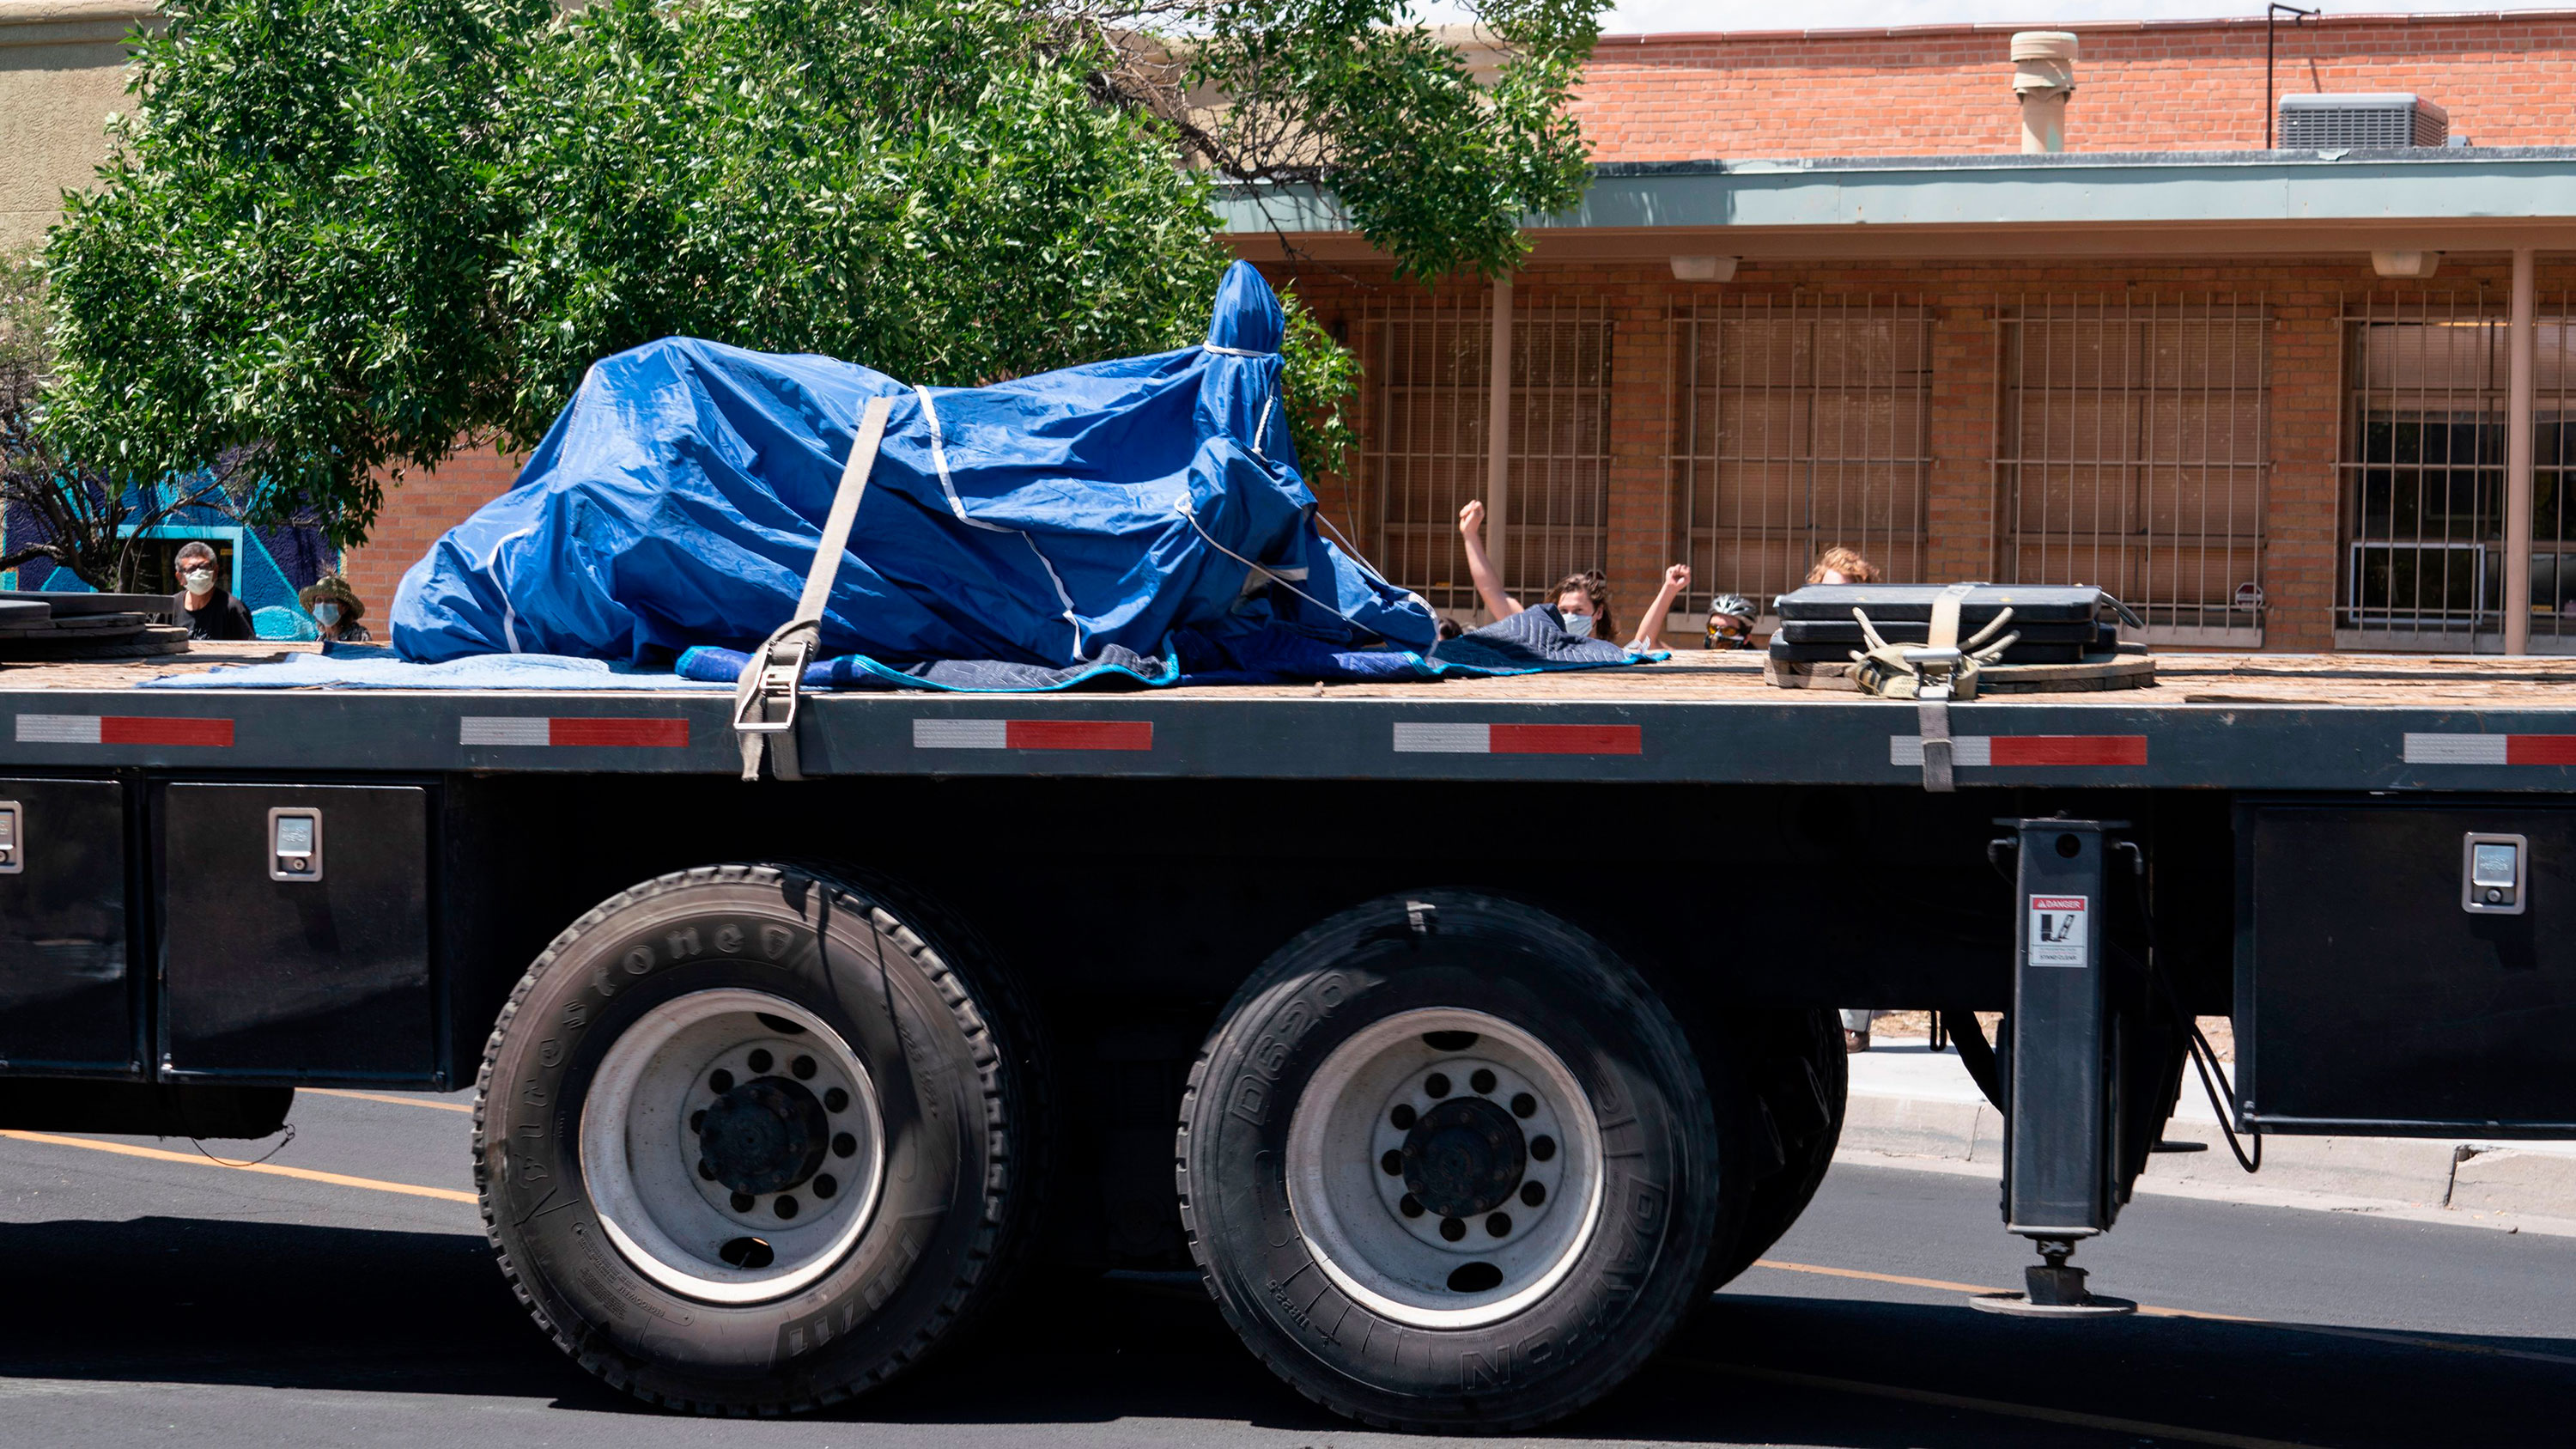 People raise their fists as the statue of Juan de Oñate is hauled away from the grounds of the Albuquerque Museum in Albuquerque, New Mexico, on June 16.